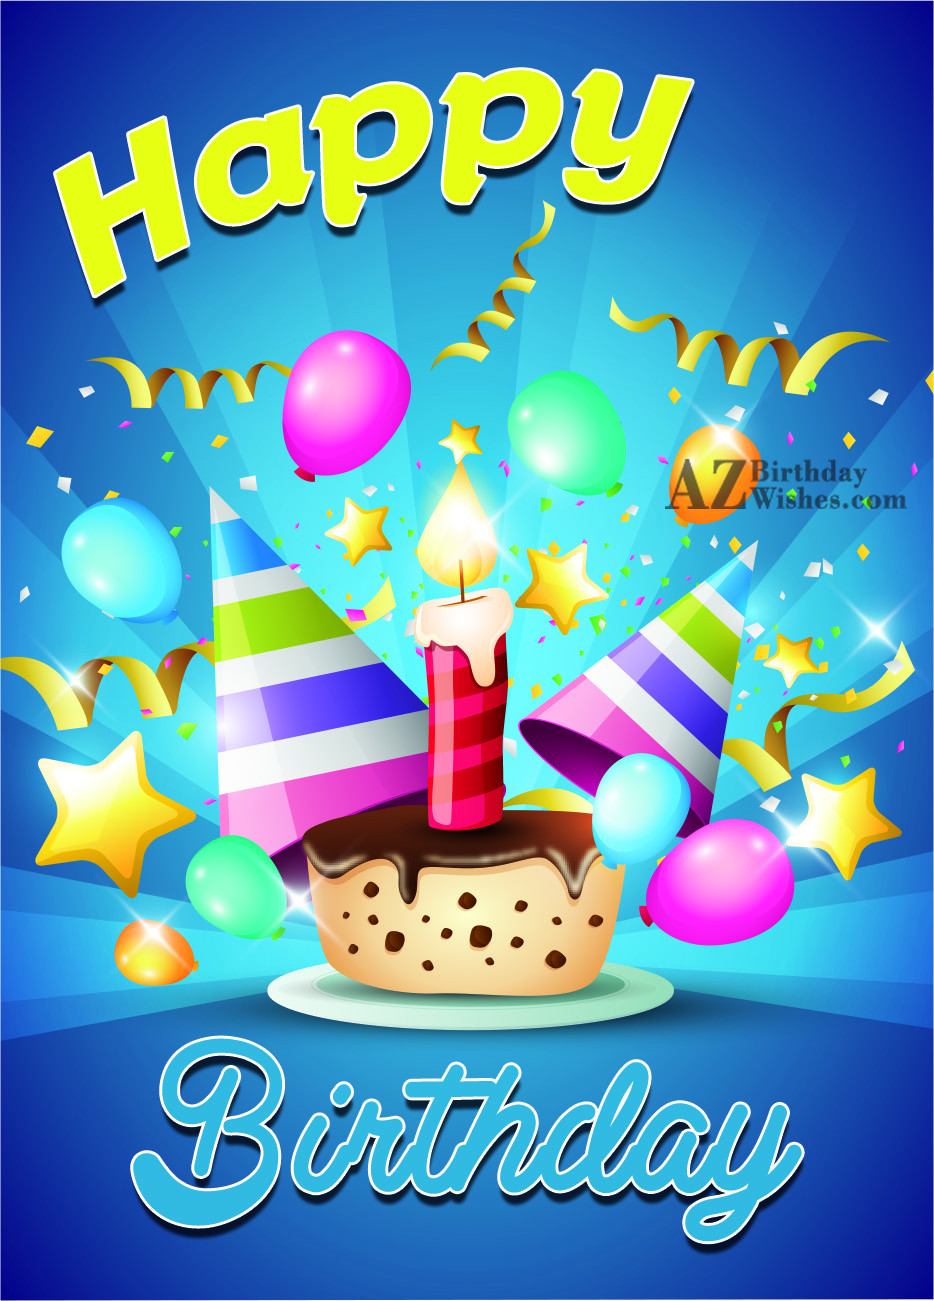 Best ideas about 1st Birthday Wishes . Save or Pin 1st Birthday Wishes Now.